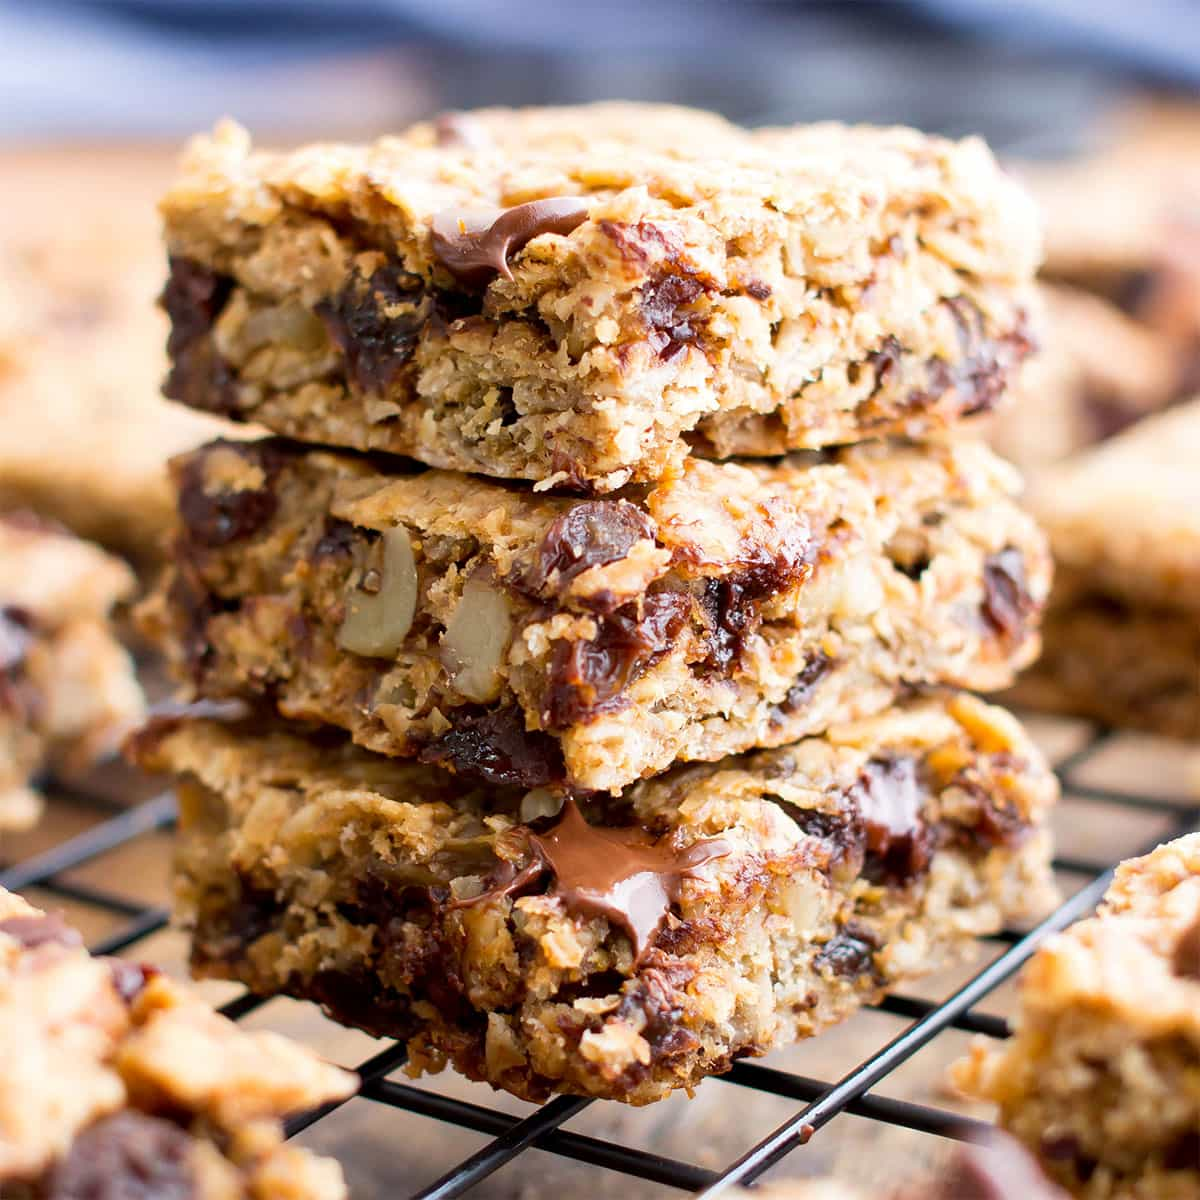 Image for Gluten Free Banana Chocolate Chip Oatmeal Breakfast Bars (Vegan, One Bowl, GF, DF) - Beaming Baker